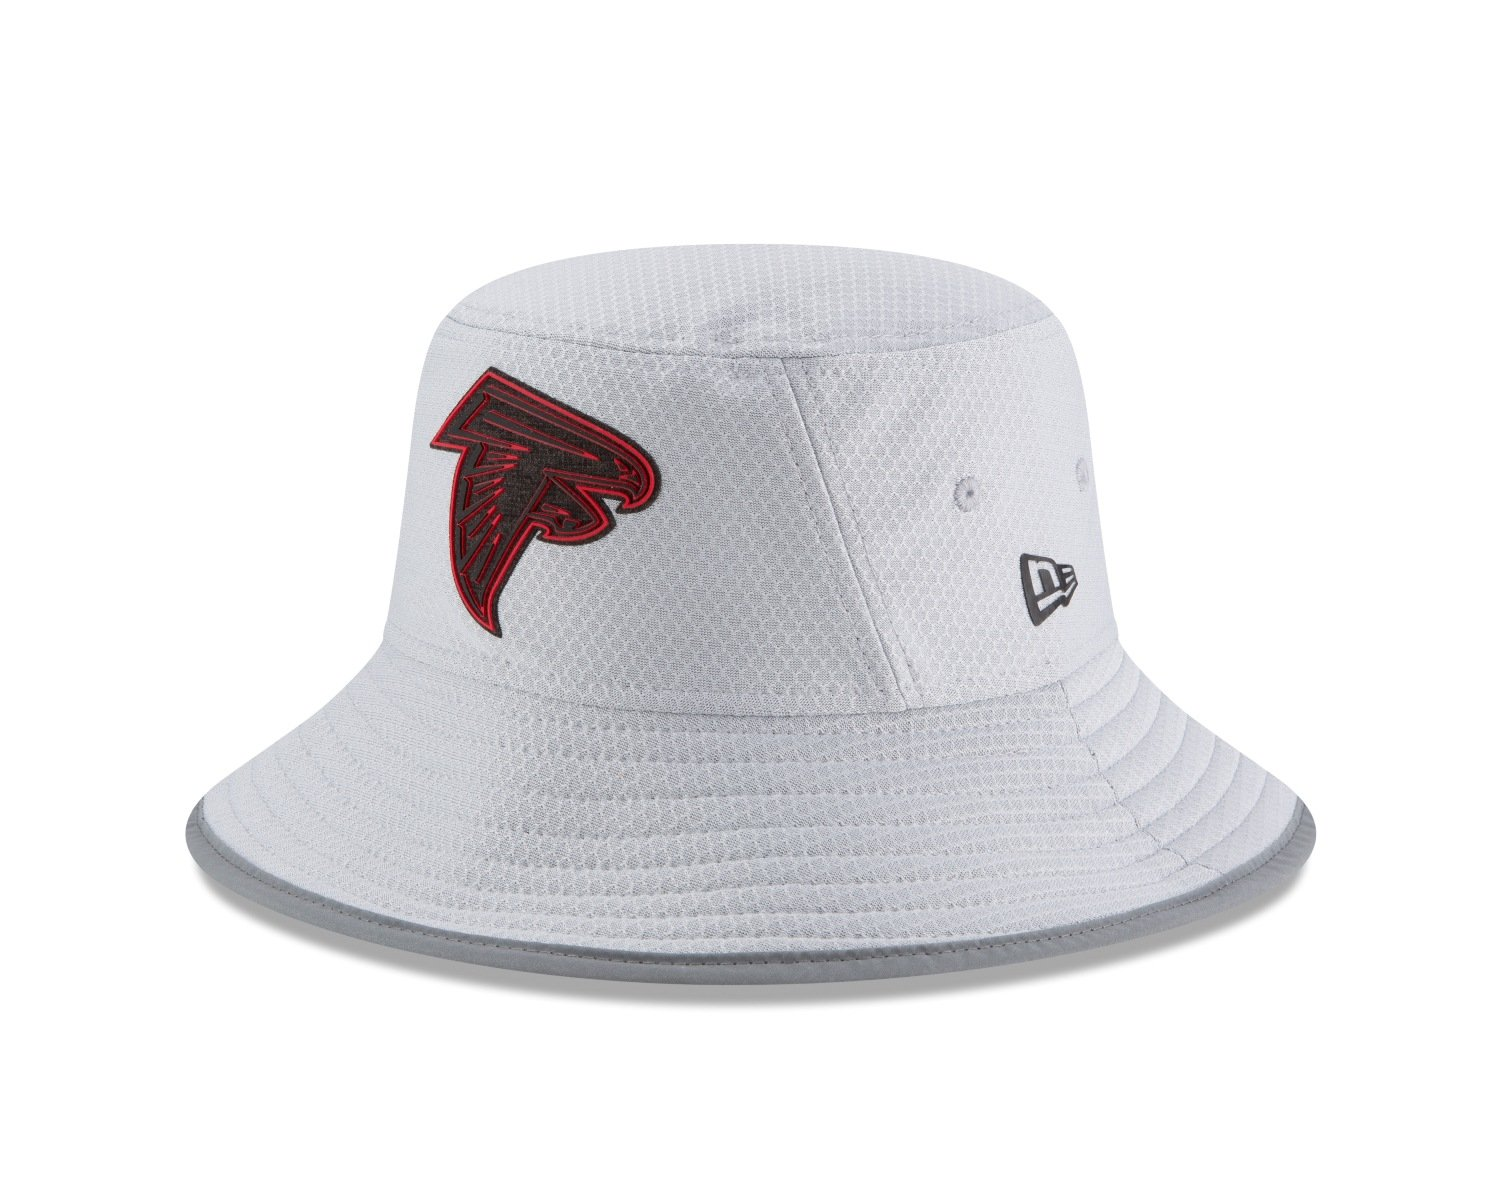 ef1fc287a59 New era atlanta falcons training camp sideline bucket hat gray sports  outdoors jpg 1500x1200 Girl scouts